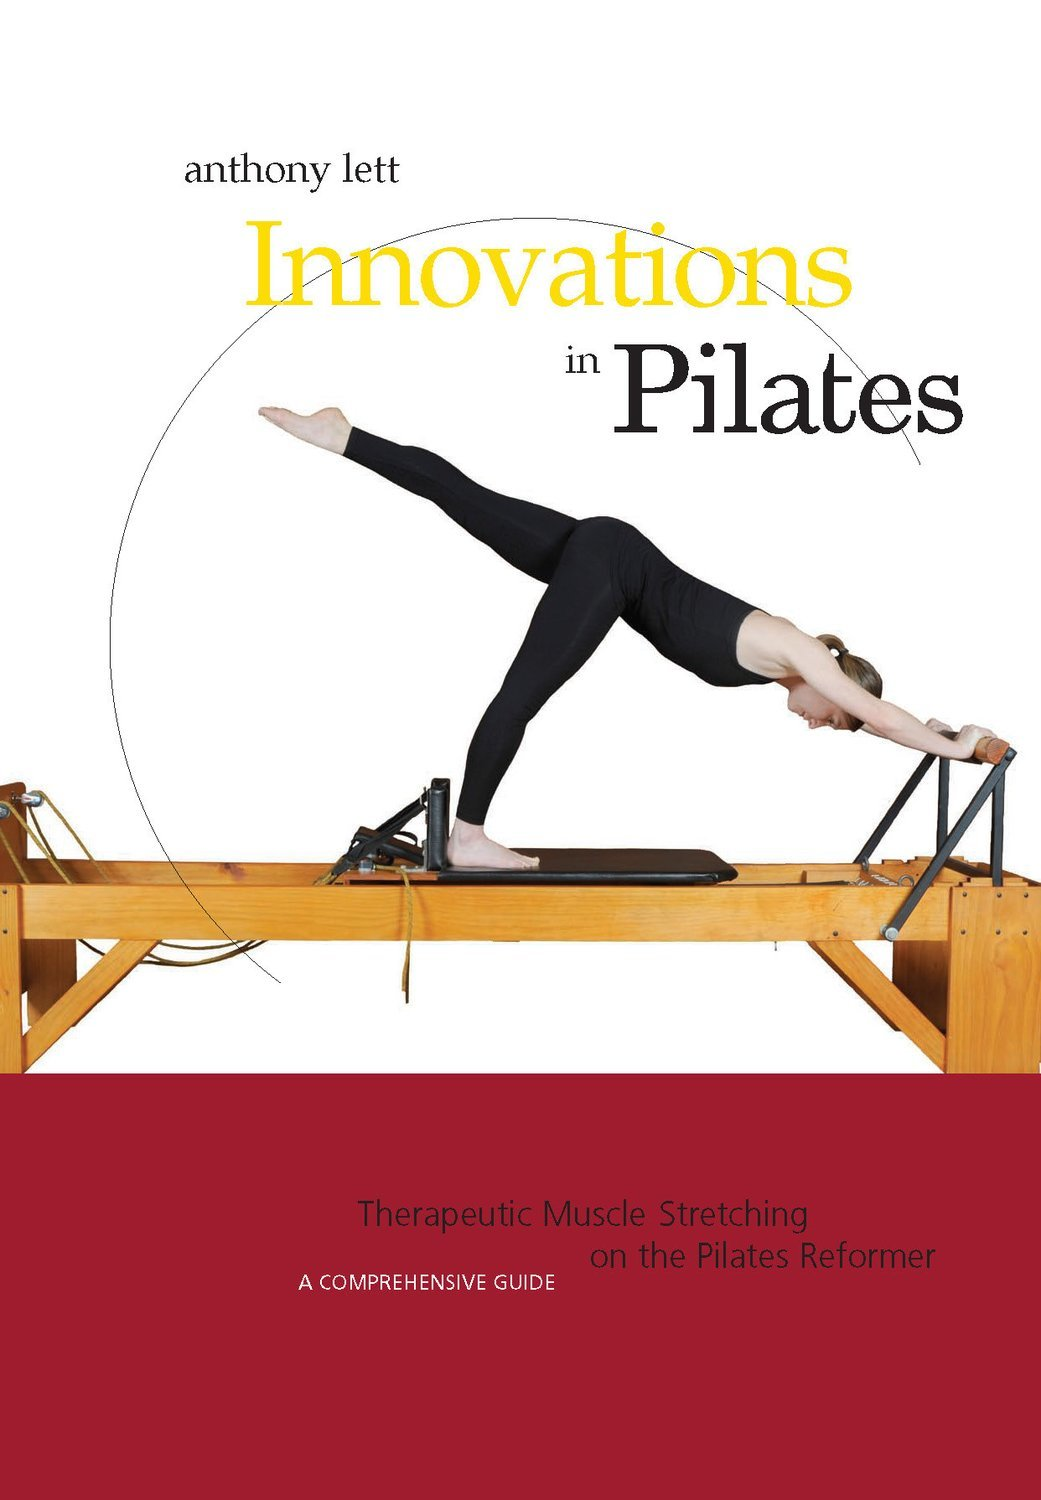 Therapeutic Muscle Stretching on the Pilates Reformer (Digital)